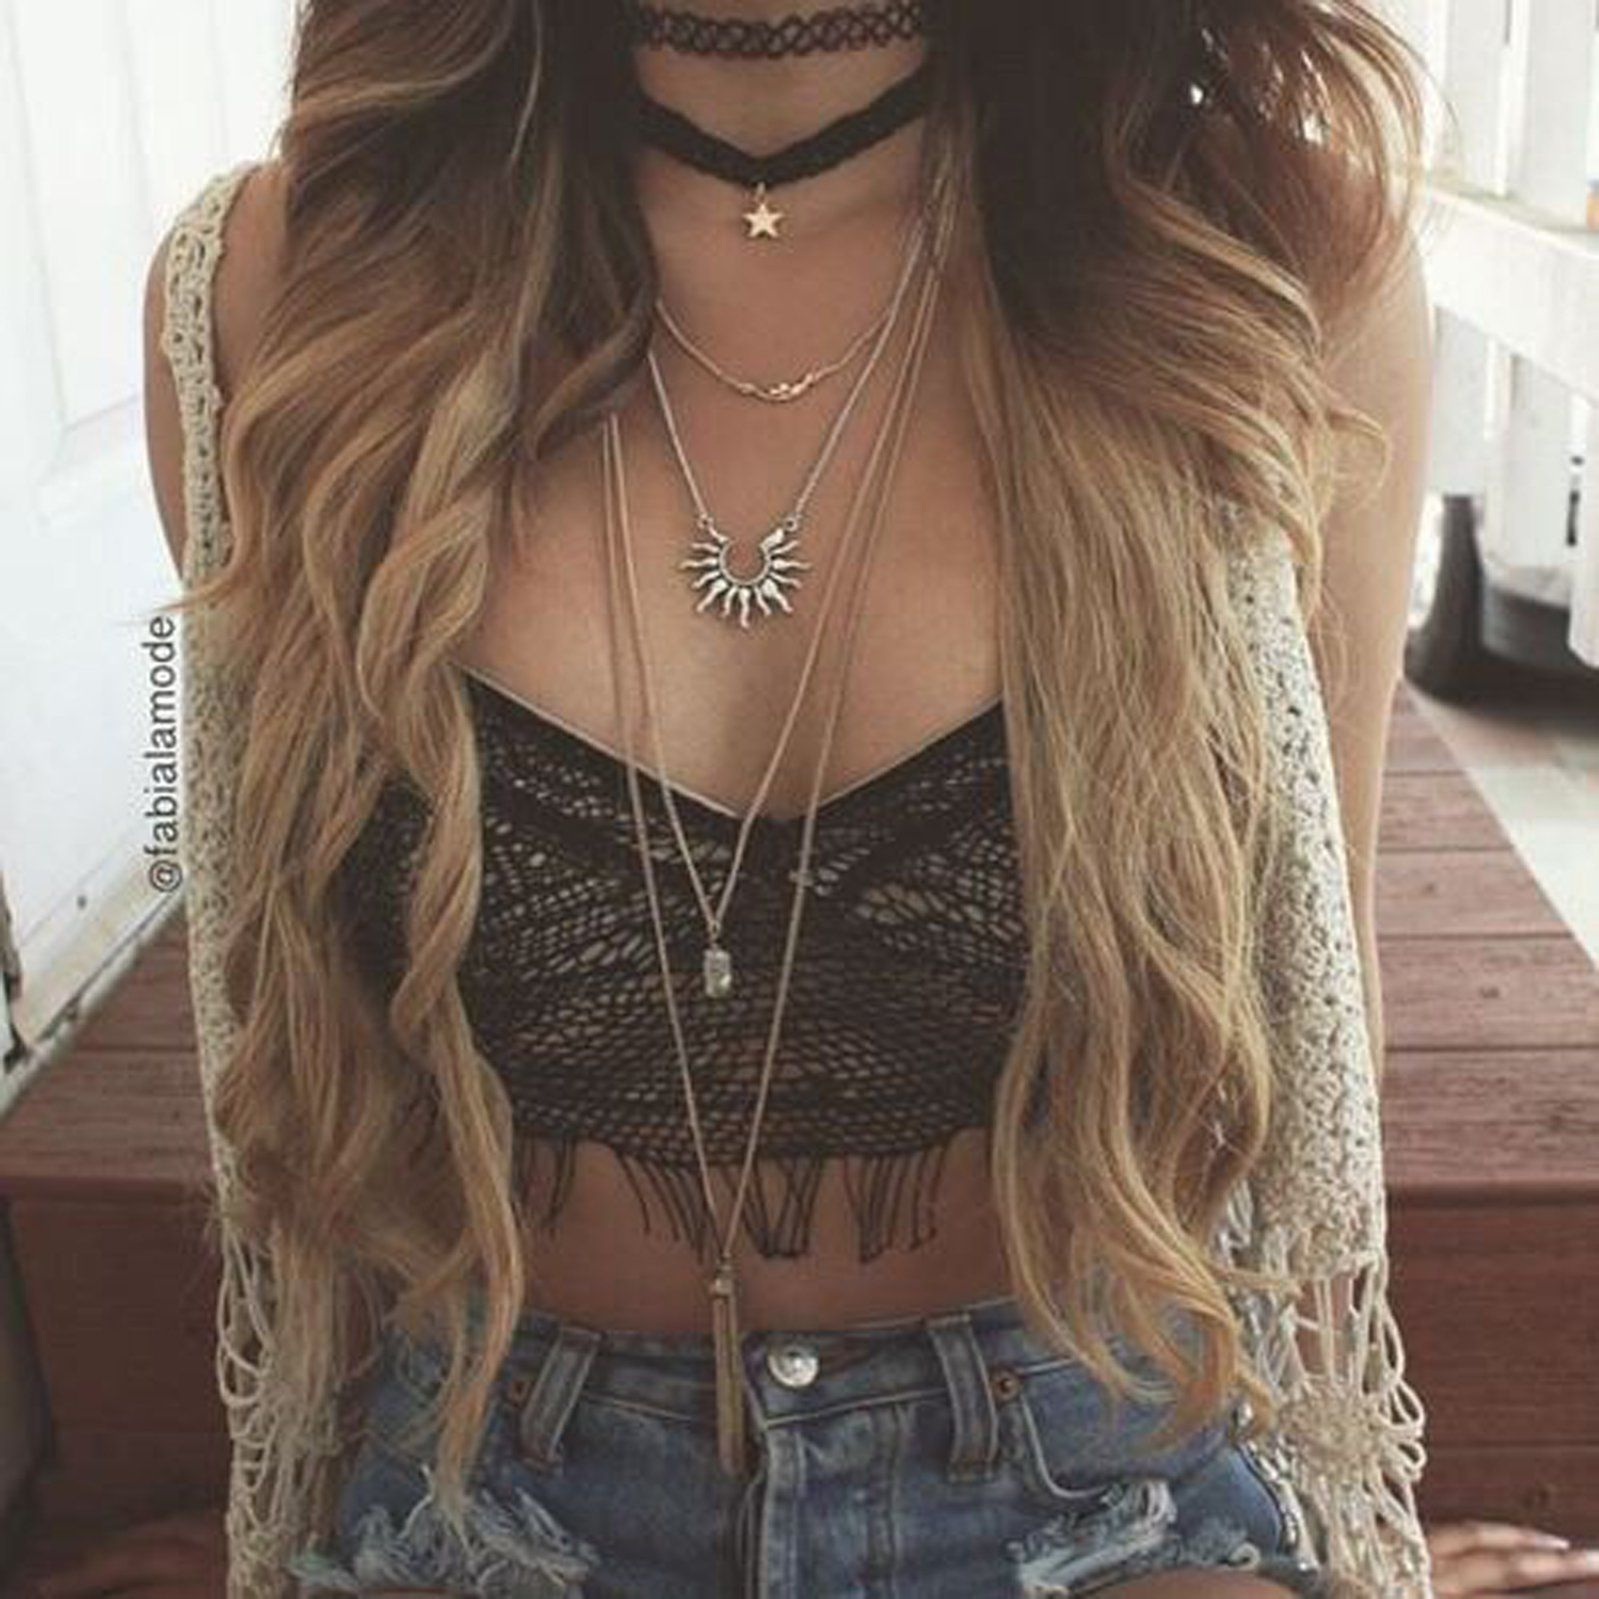 Cute Summer Outfits for Teenage Girls Tumblr - Long Hair Styles 2017 Curly Ombre Hair - Black Lace Crop Top - Black Choker - Layered Gold Necklace - MyBodiArt.com